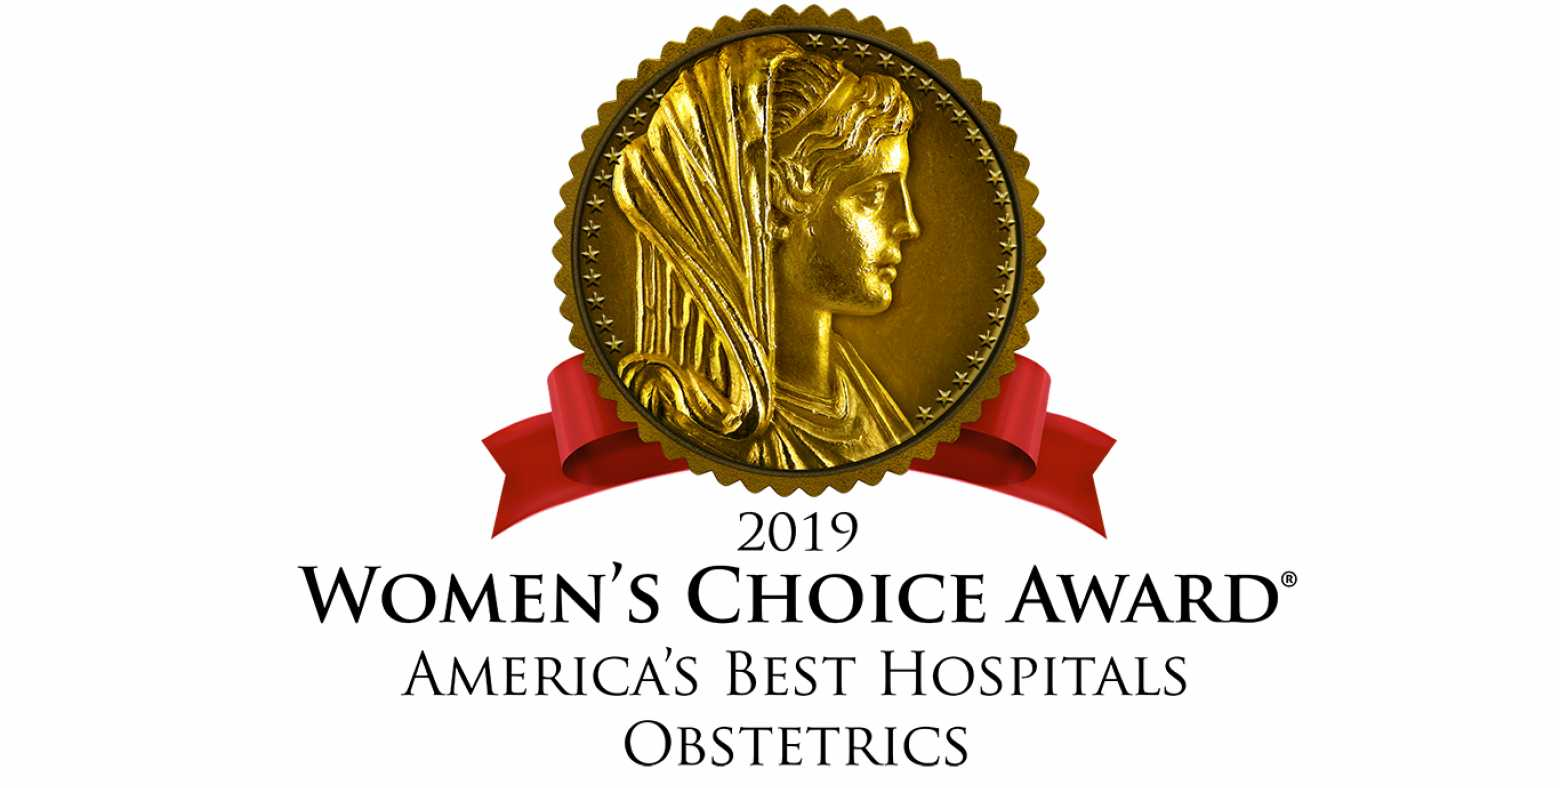 2019 Women's Choice Award America's Best Hospitals for Obstetrics designation seal